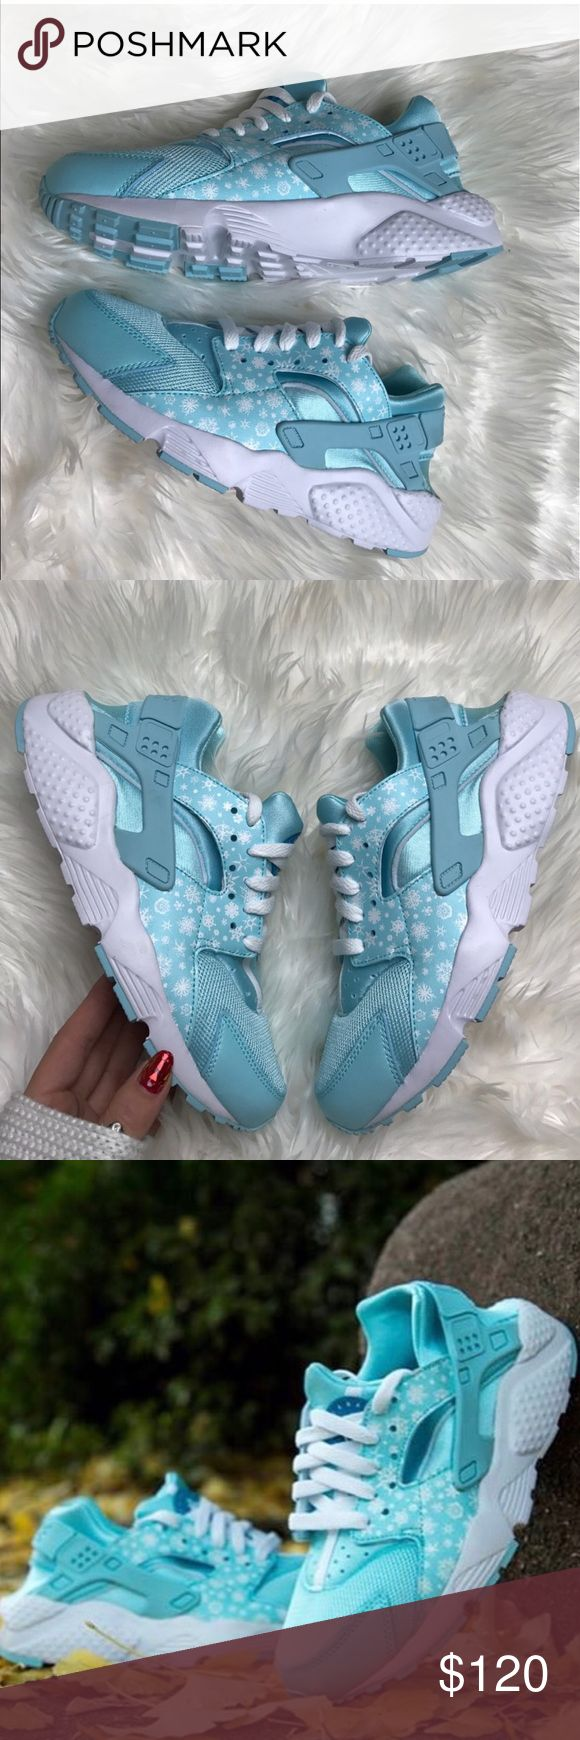 Huaraches Nike Frozen Bright Blue and White in brand new condition never worn - bought for my daughter but she never wore them Nike Shoes Sneakers